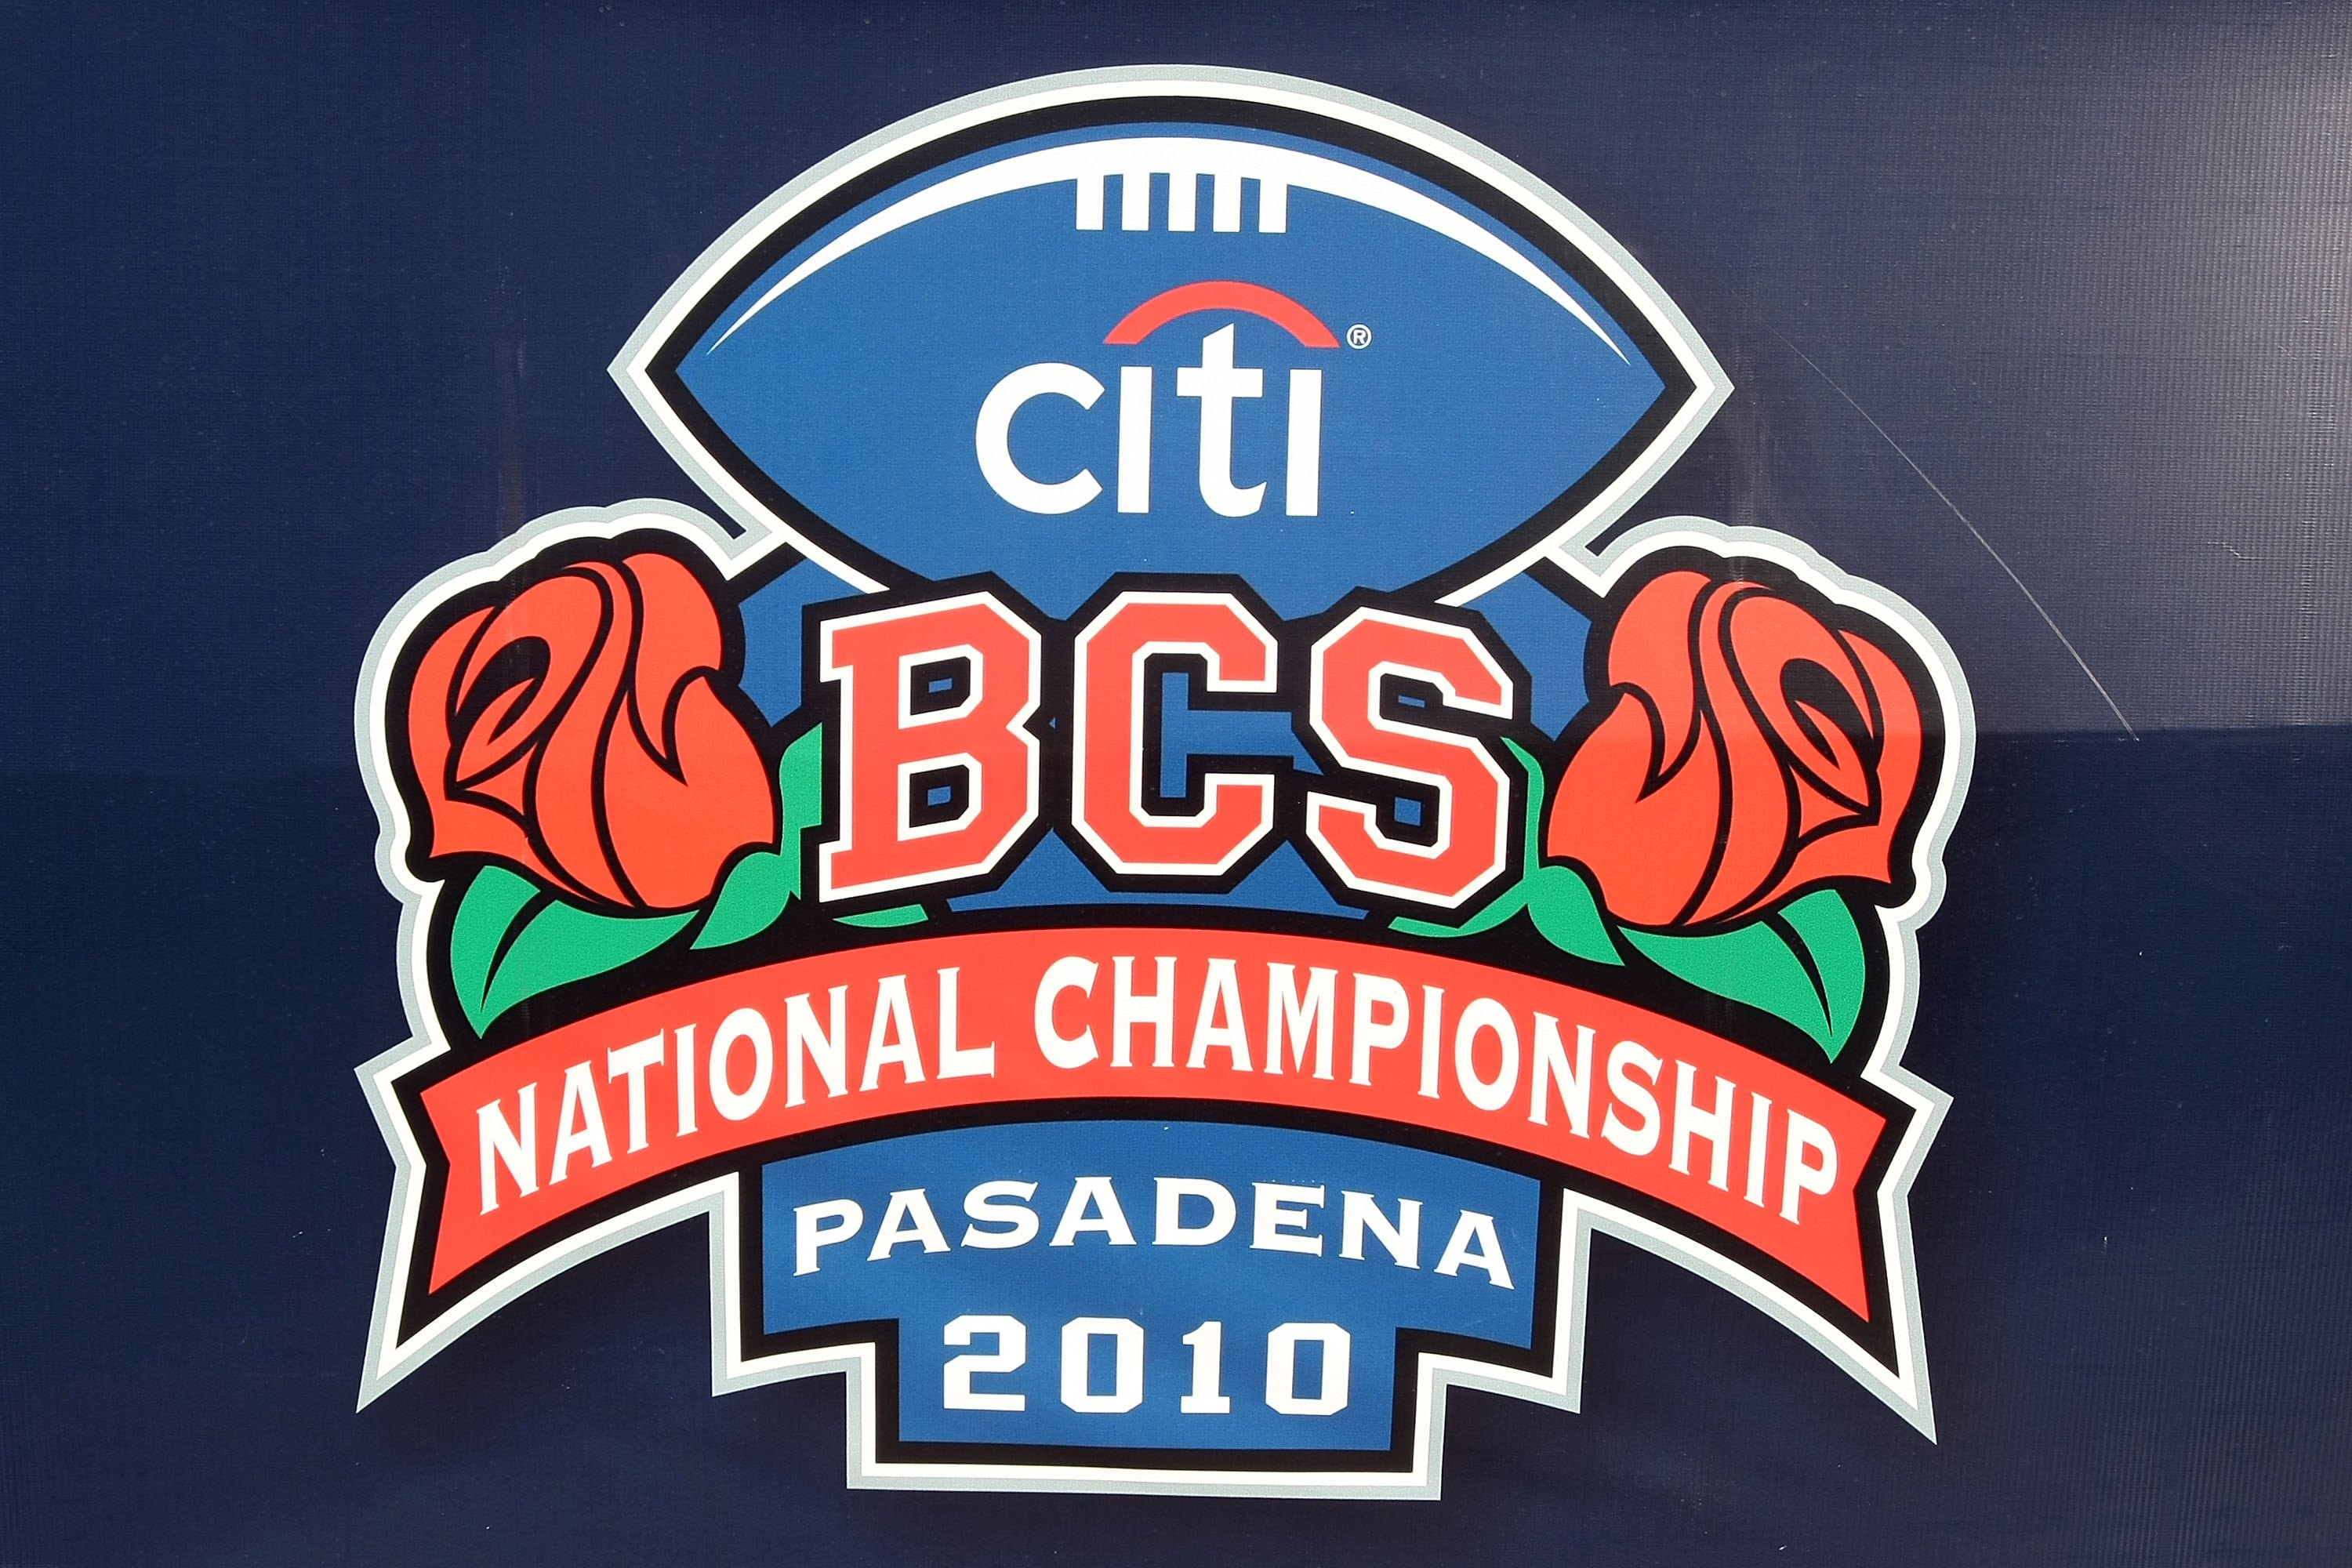 PASADENA, CA - JANUARY 07:  The detailed picture of the logo on a banner before the Texas Longhorns take on the Alabama Crimson Tide in the Citi BCS National Championship game at the Rose Bowl on January 7, 2010 in Pasadena, California.  (Photo by Stephen